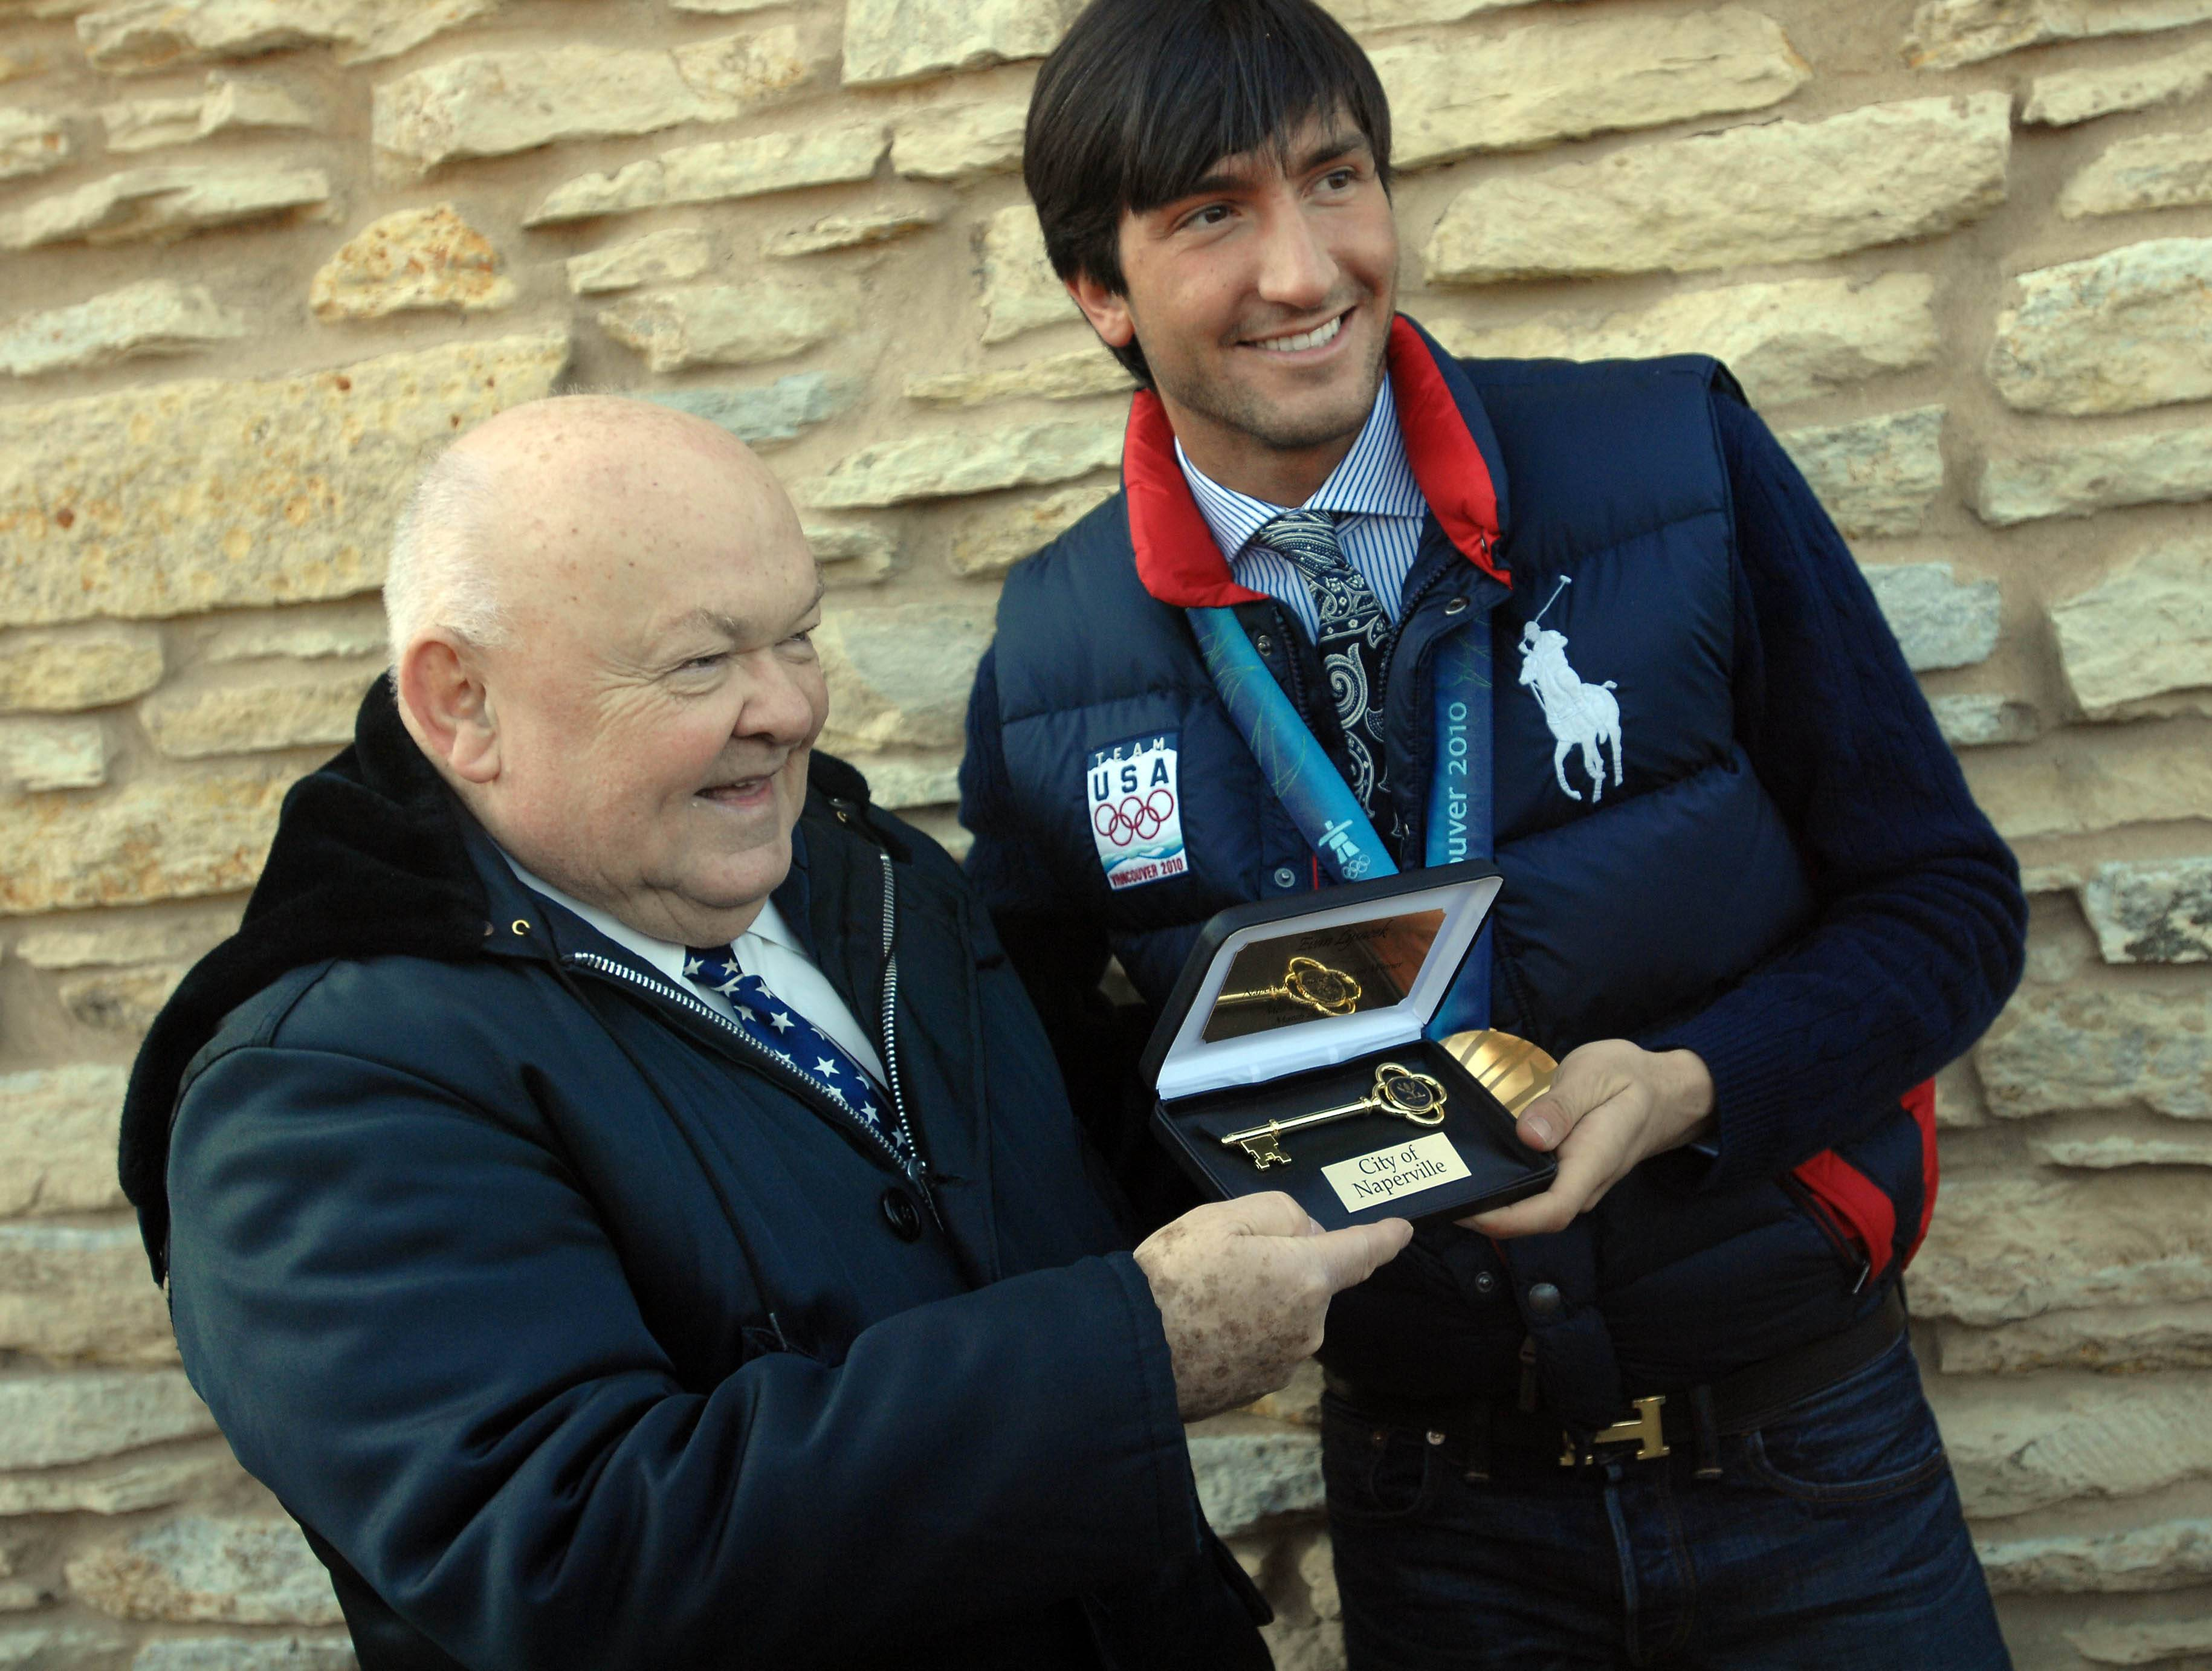 Pradel always was happy to celebrate the accomplishments of Naperville residents -- especially young people. Here, he gives Olympic gold medalist Evan Lysacek the key to the city.